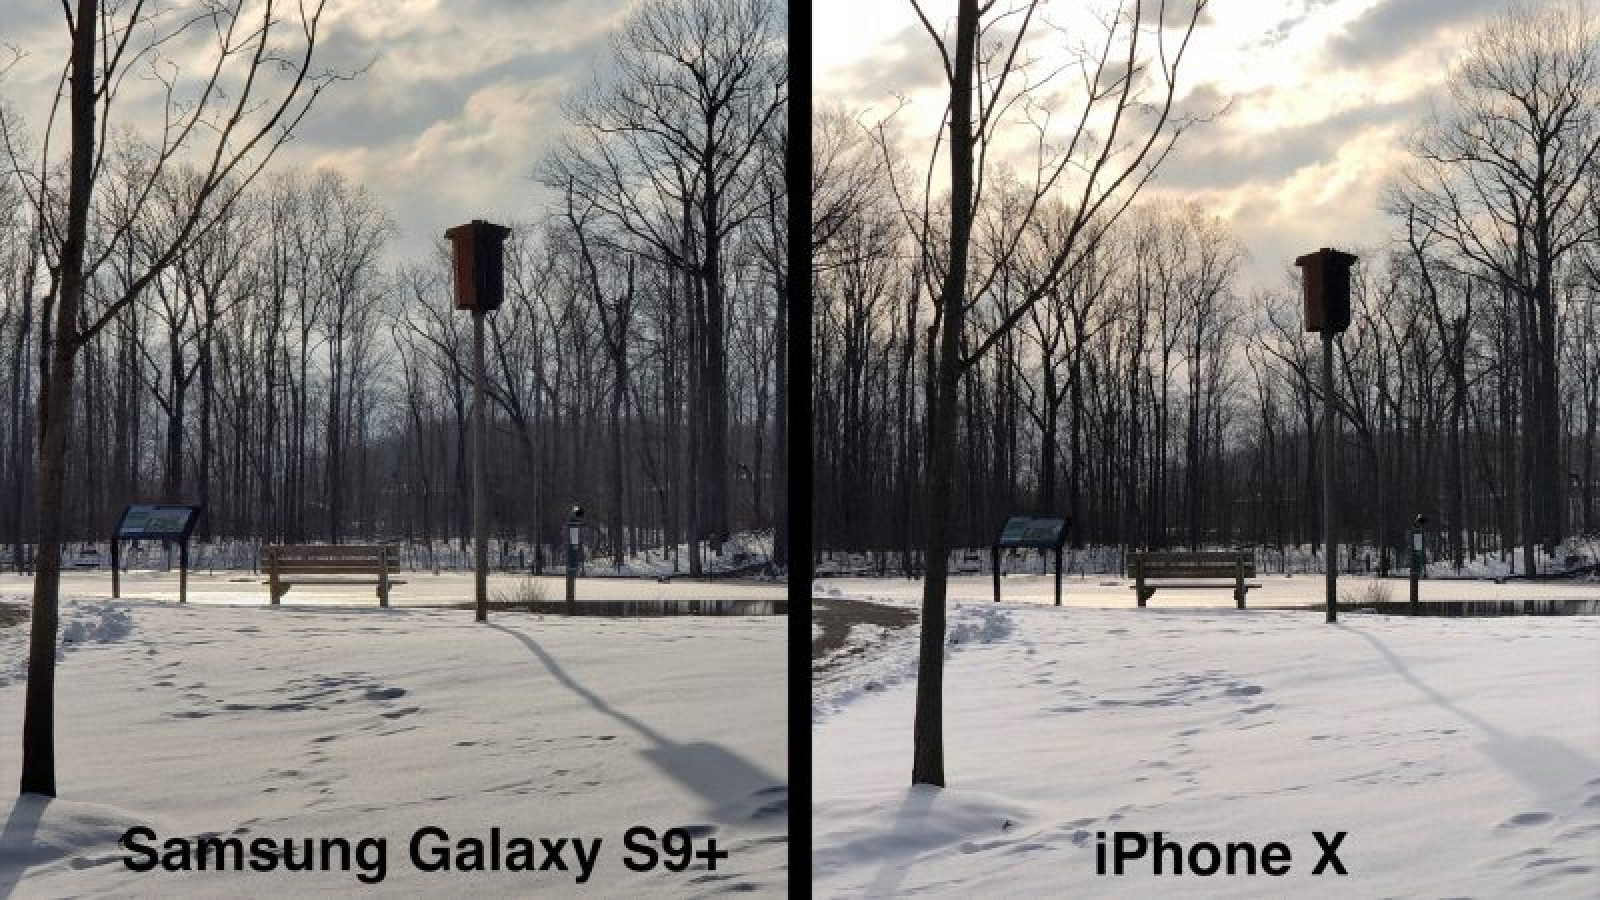 iPhone X vs. Galaxy S9+: Which Smartphone Has a Better Camera?